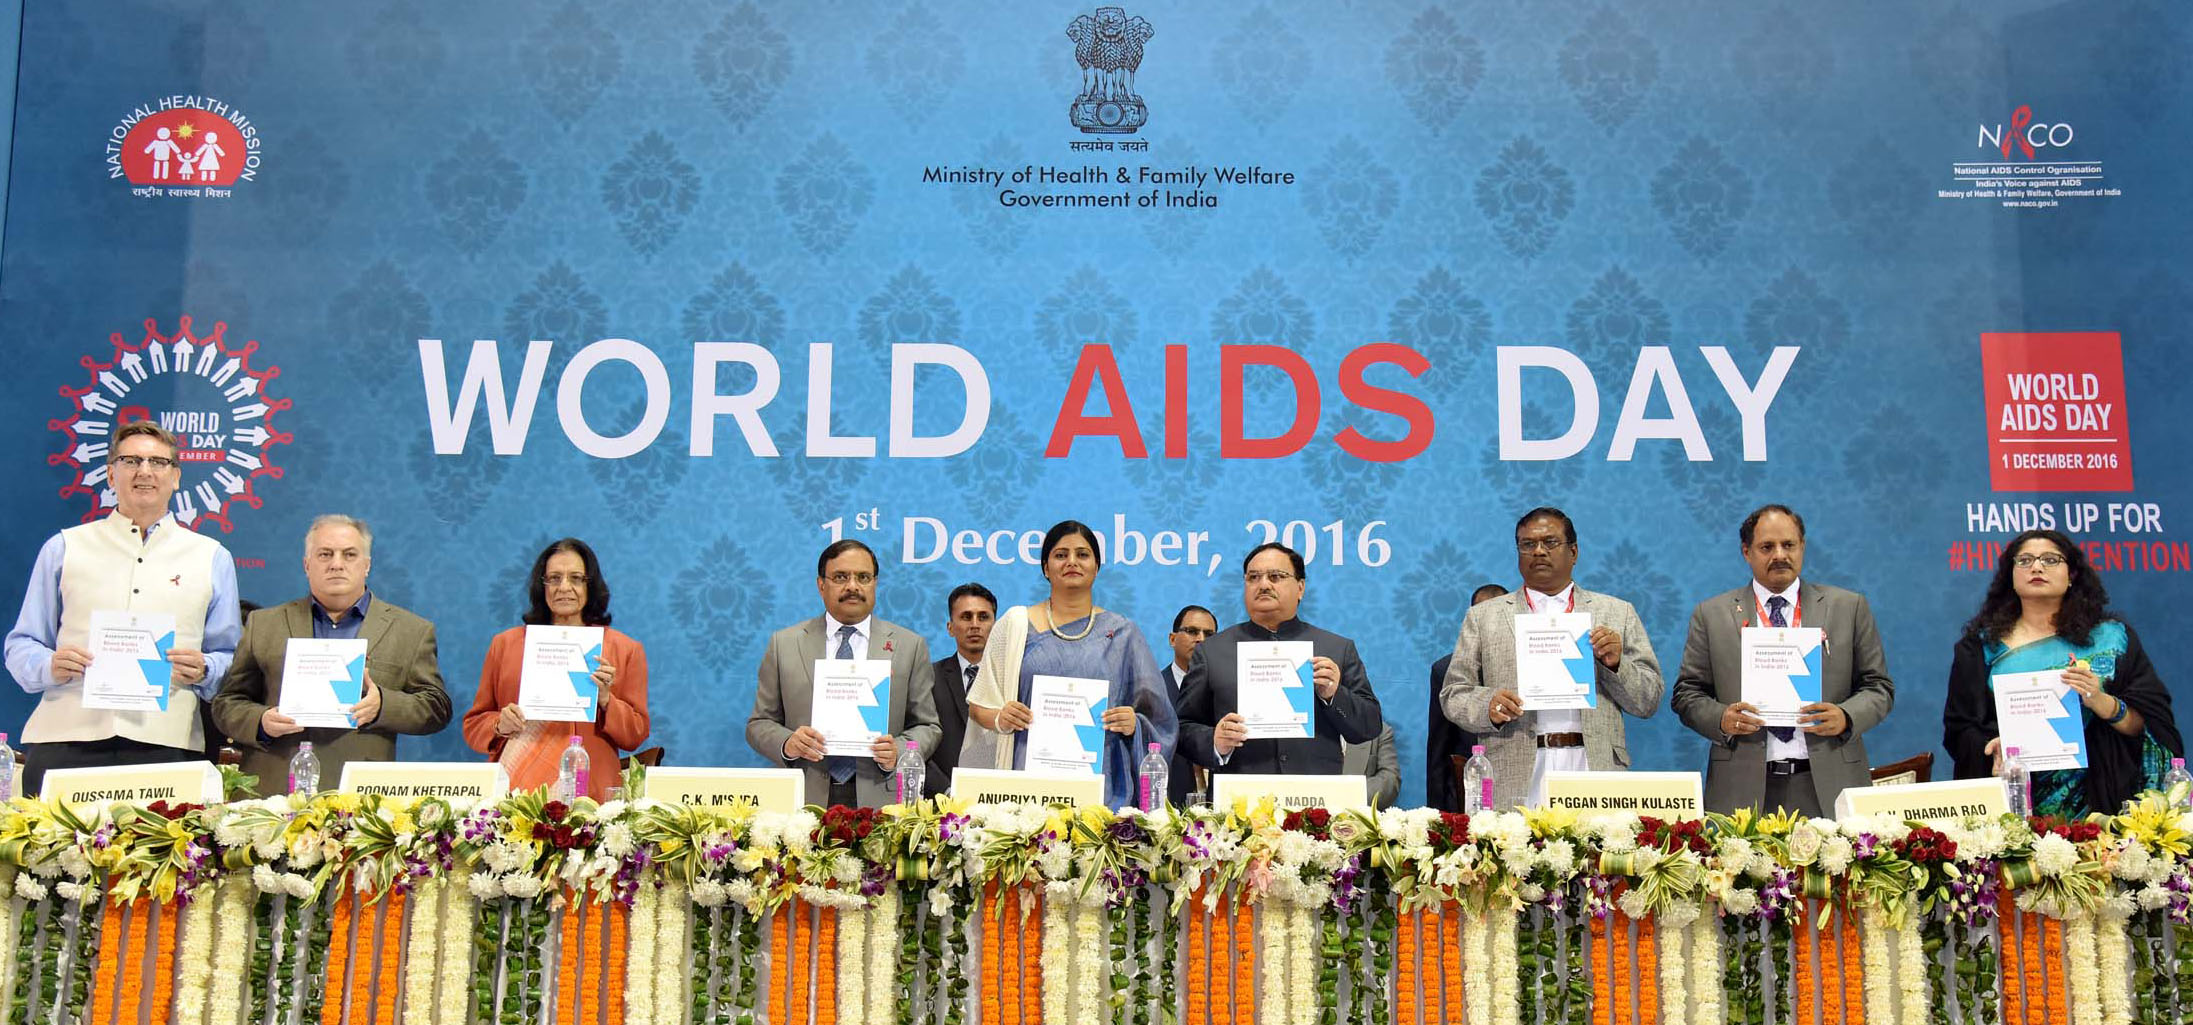 World AIDS Day event in India. Photo courtesy of Press Information Bureau, Government of India.